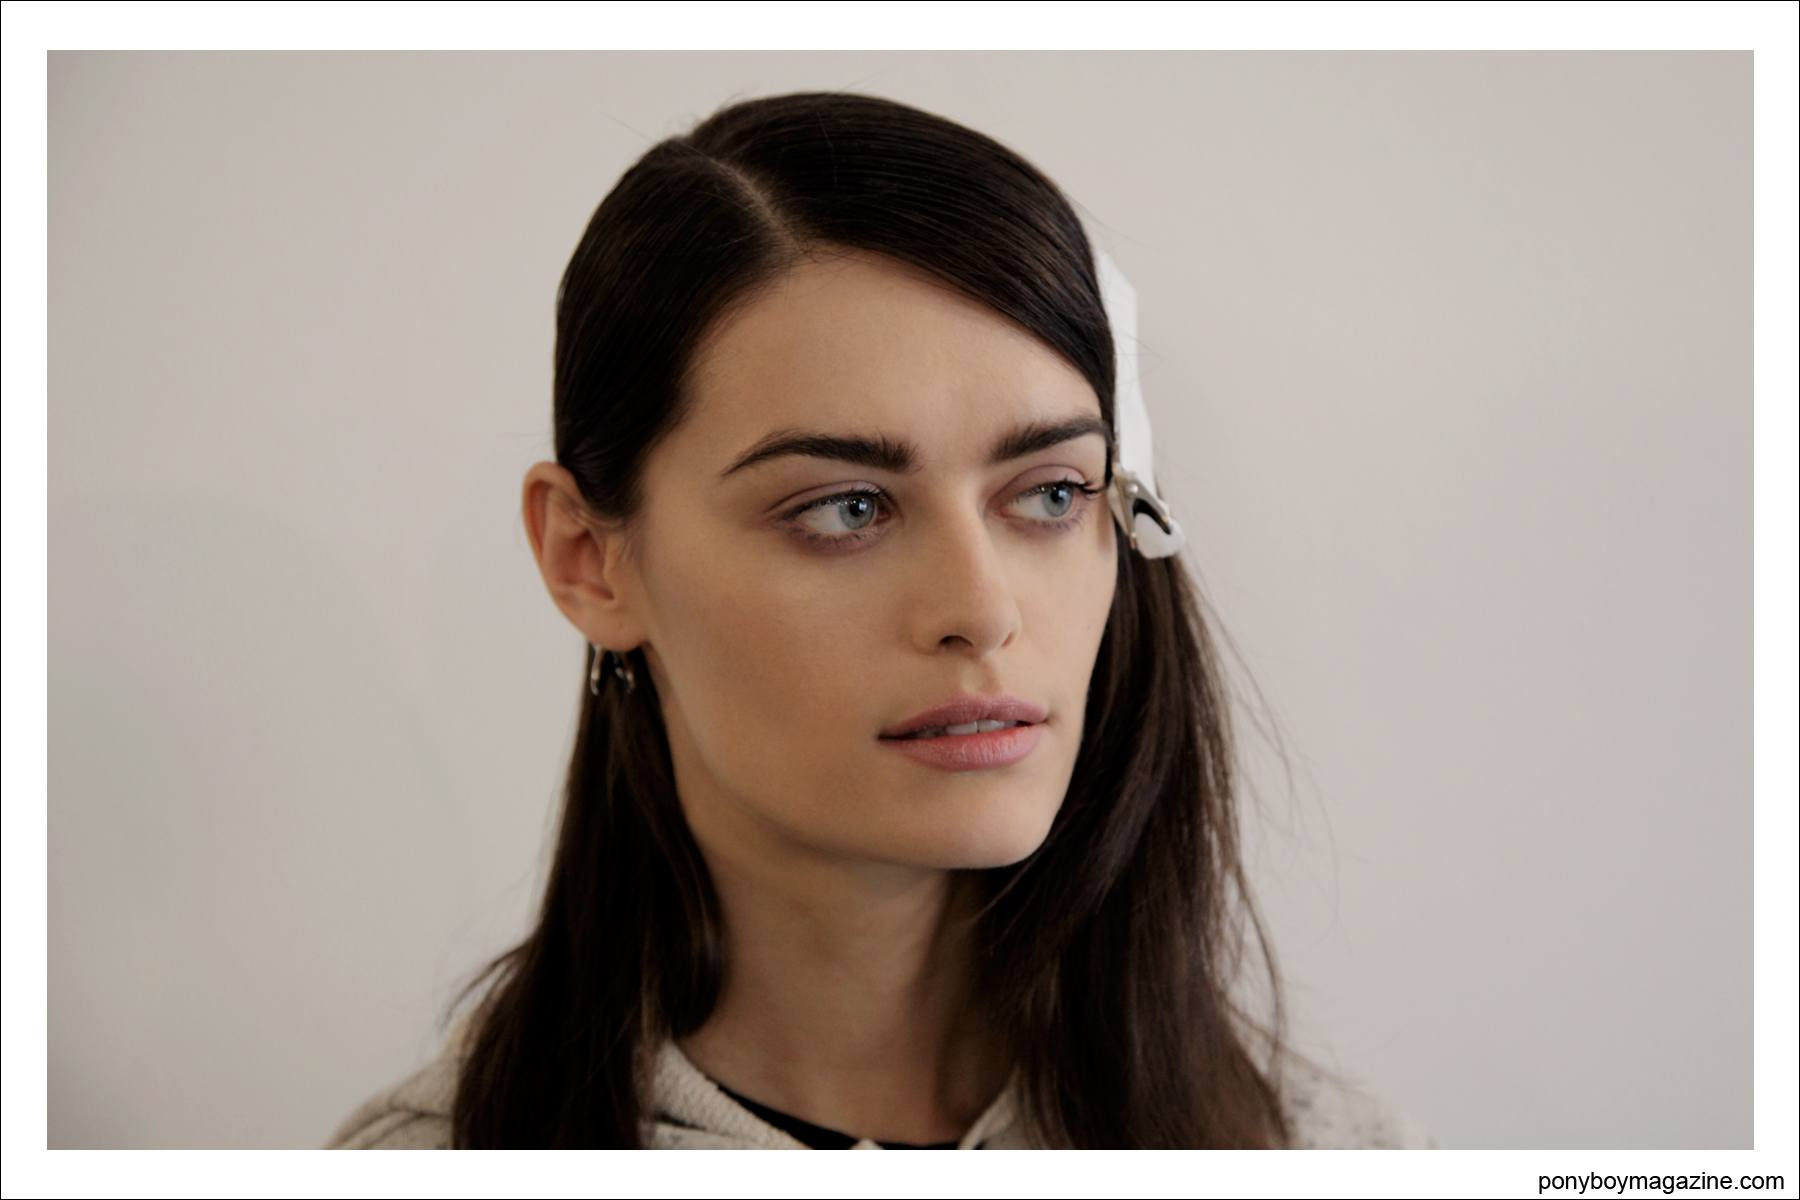 Brunette model poses for Alexander Thompson, backstage at Timo Weiland A/W 2014 Collection in New York City. Photographed exclusively for Ponyboy Magazine in New York City.